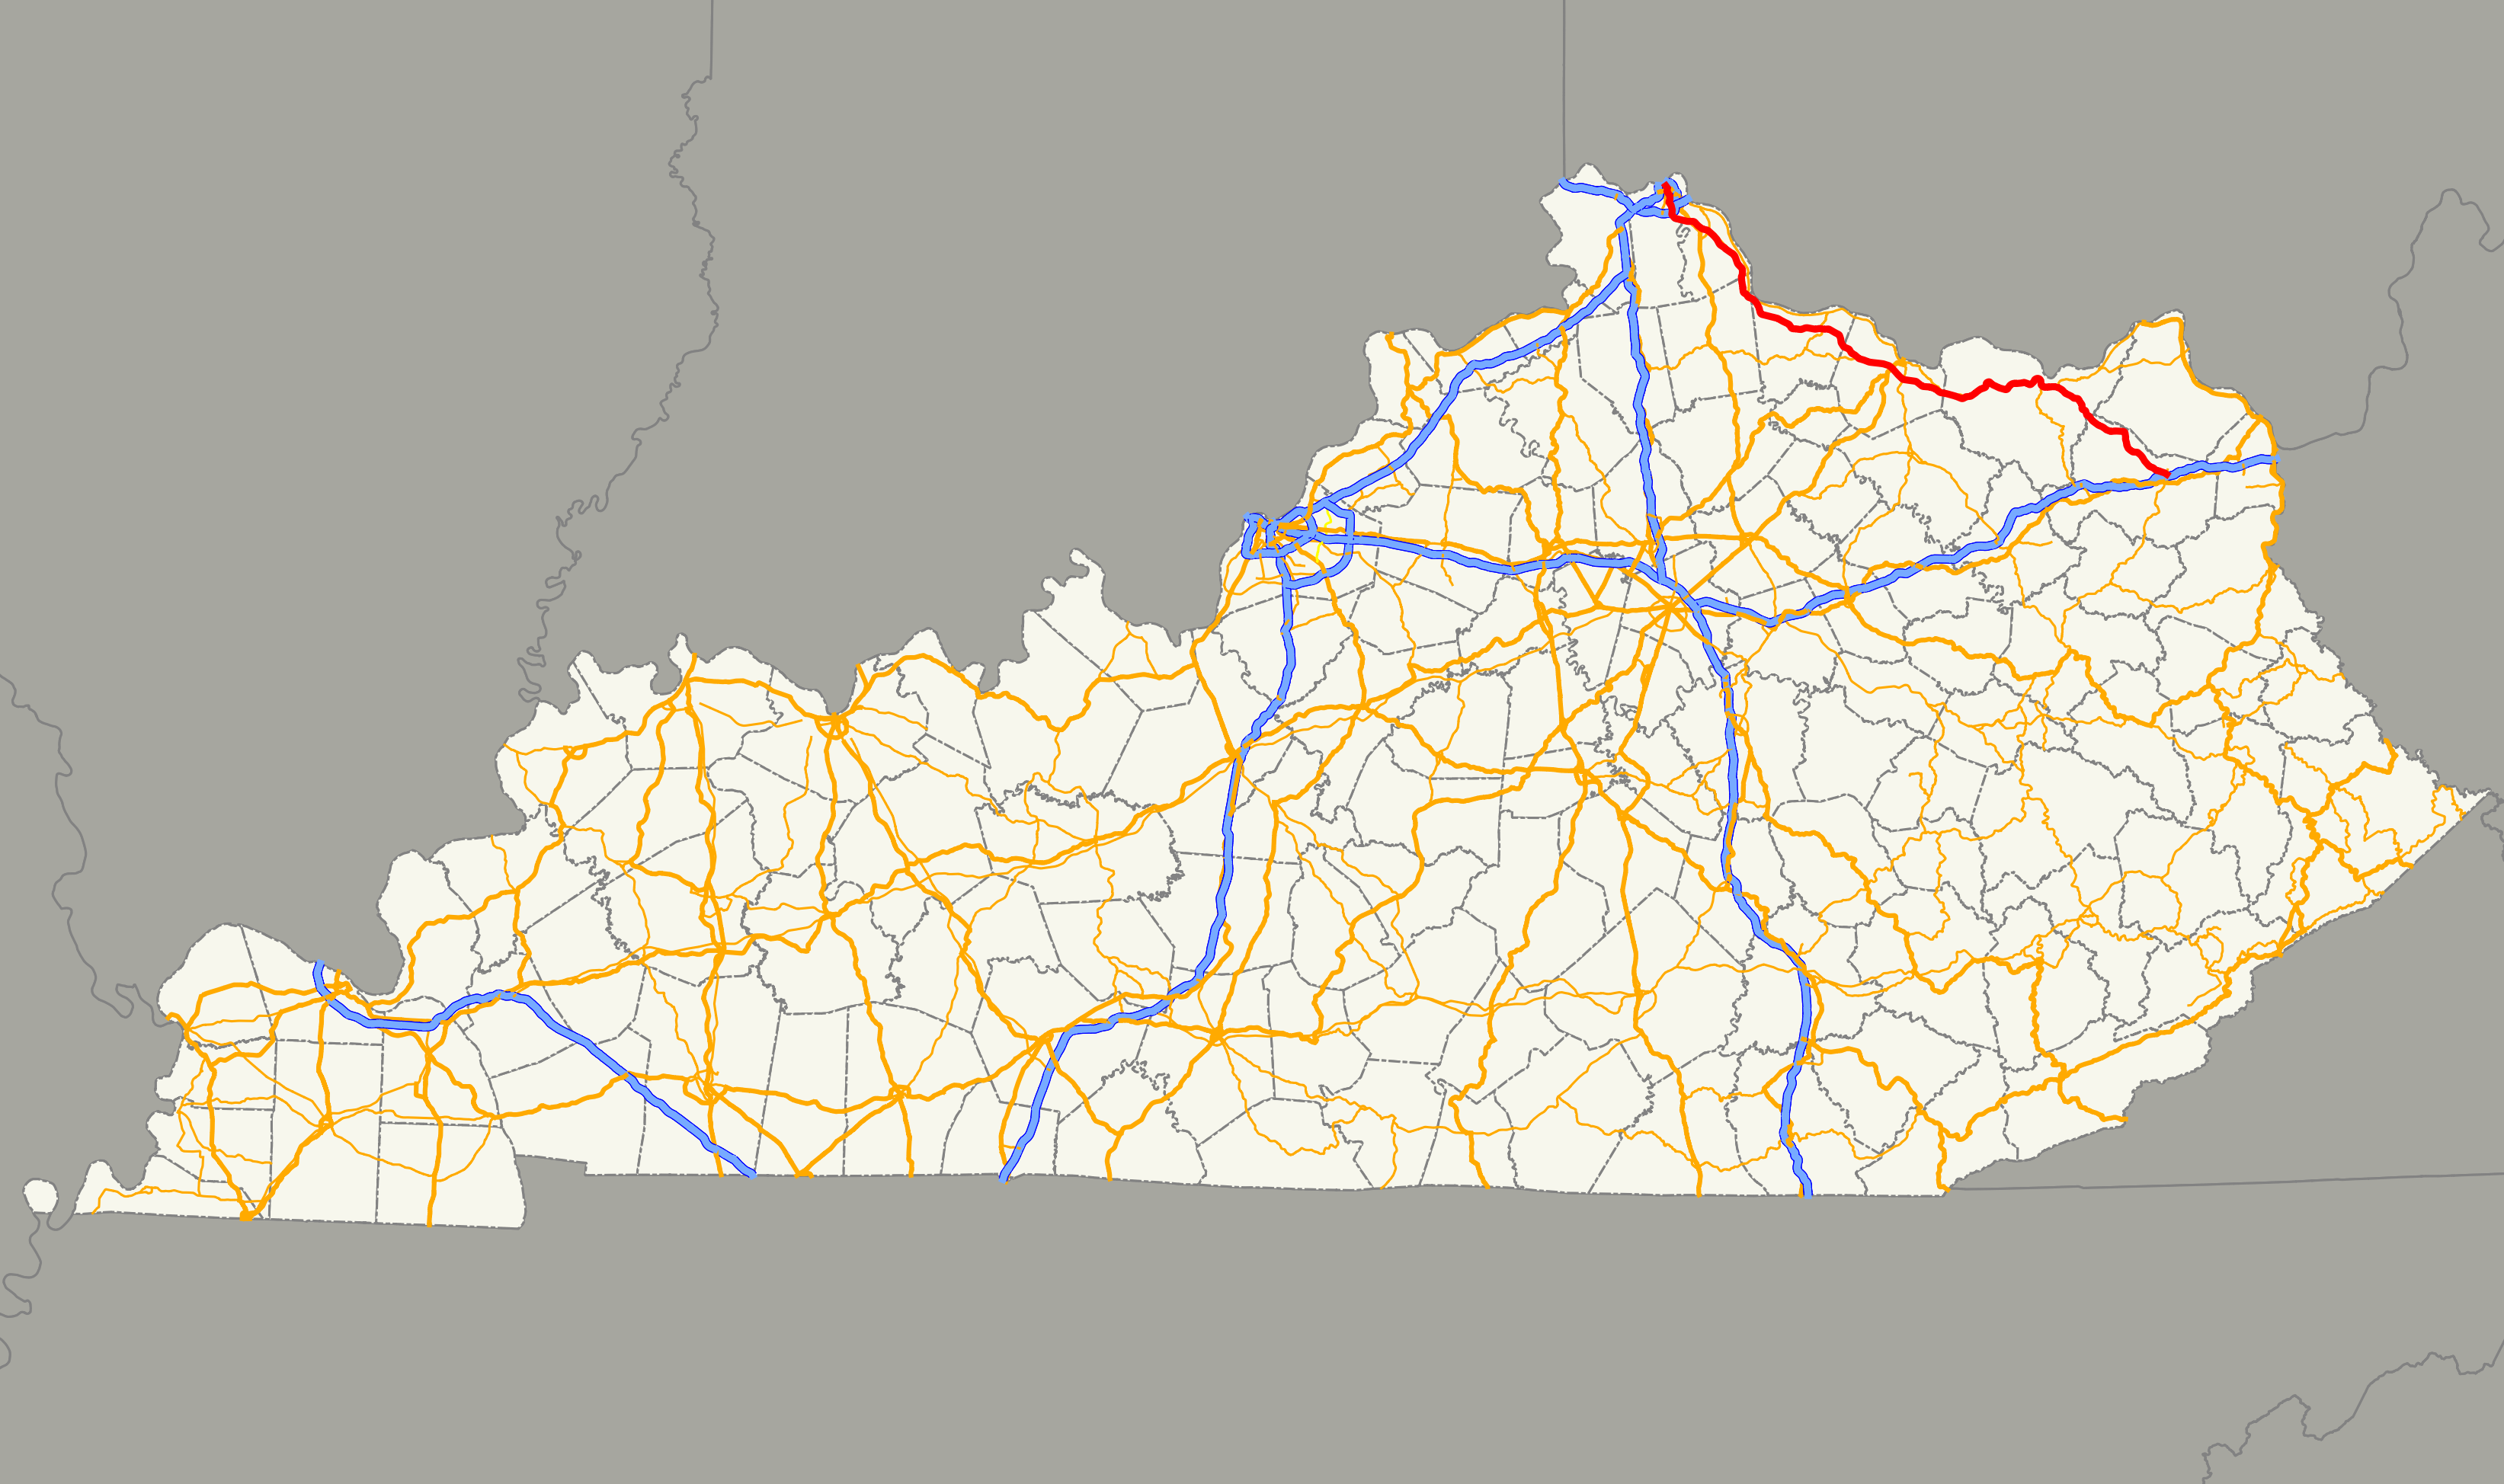 Kentucky Route 9 - Wikipedia on london congestion charge map, parks map, toll roads in france, toll roads in south carolina, library map, street map, toll new york, route map, roman roads map, toll roads orange county california, bridge map, toll roads in tampa fl, toll roads in ca, traffic map, ntta toll map, richland county sc gis map, rail map, ocala fl map, garland tx map, pittsburgh on us map,